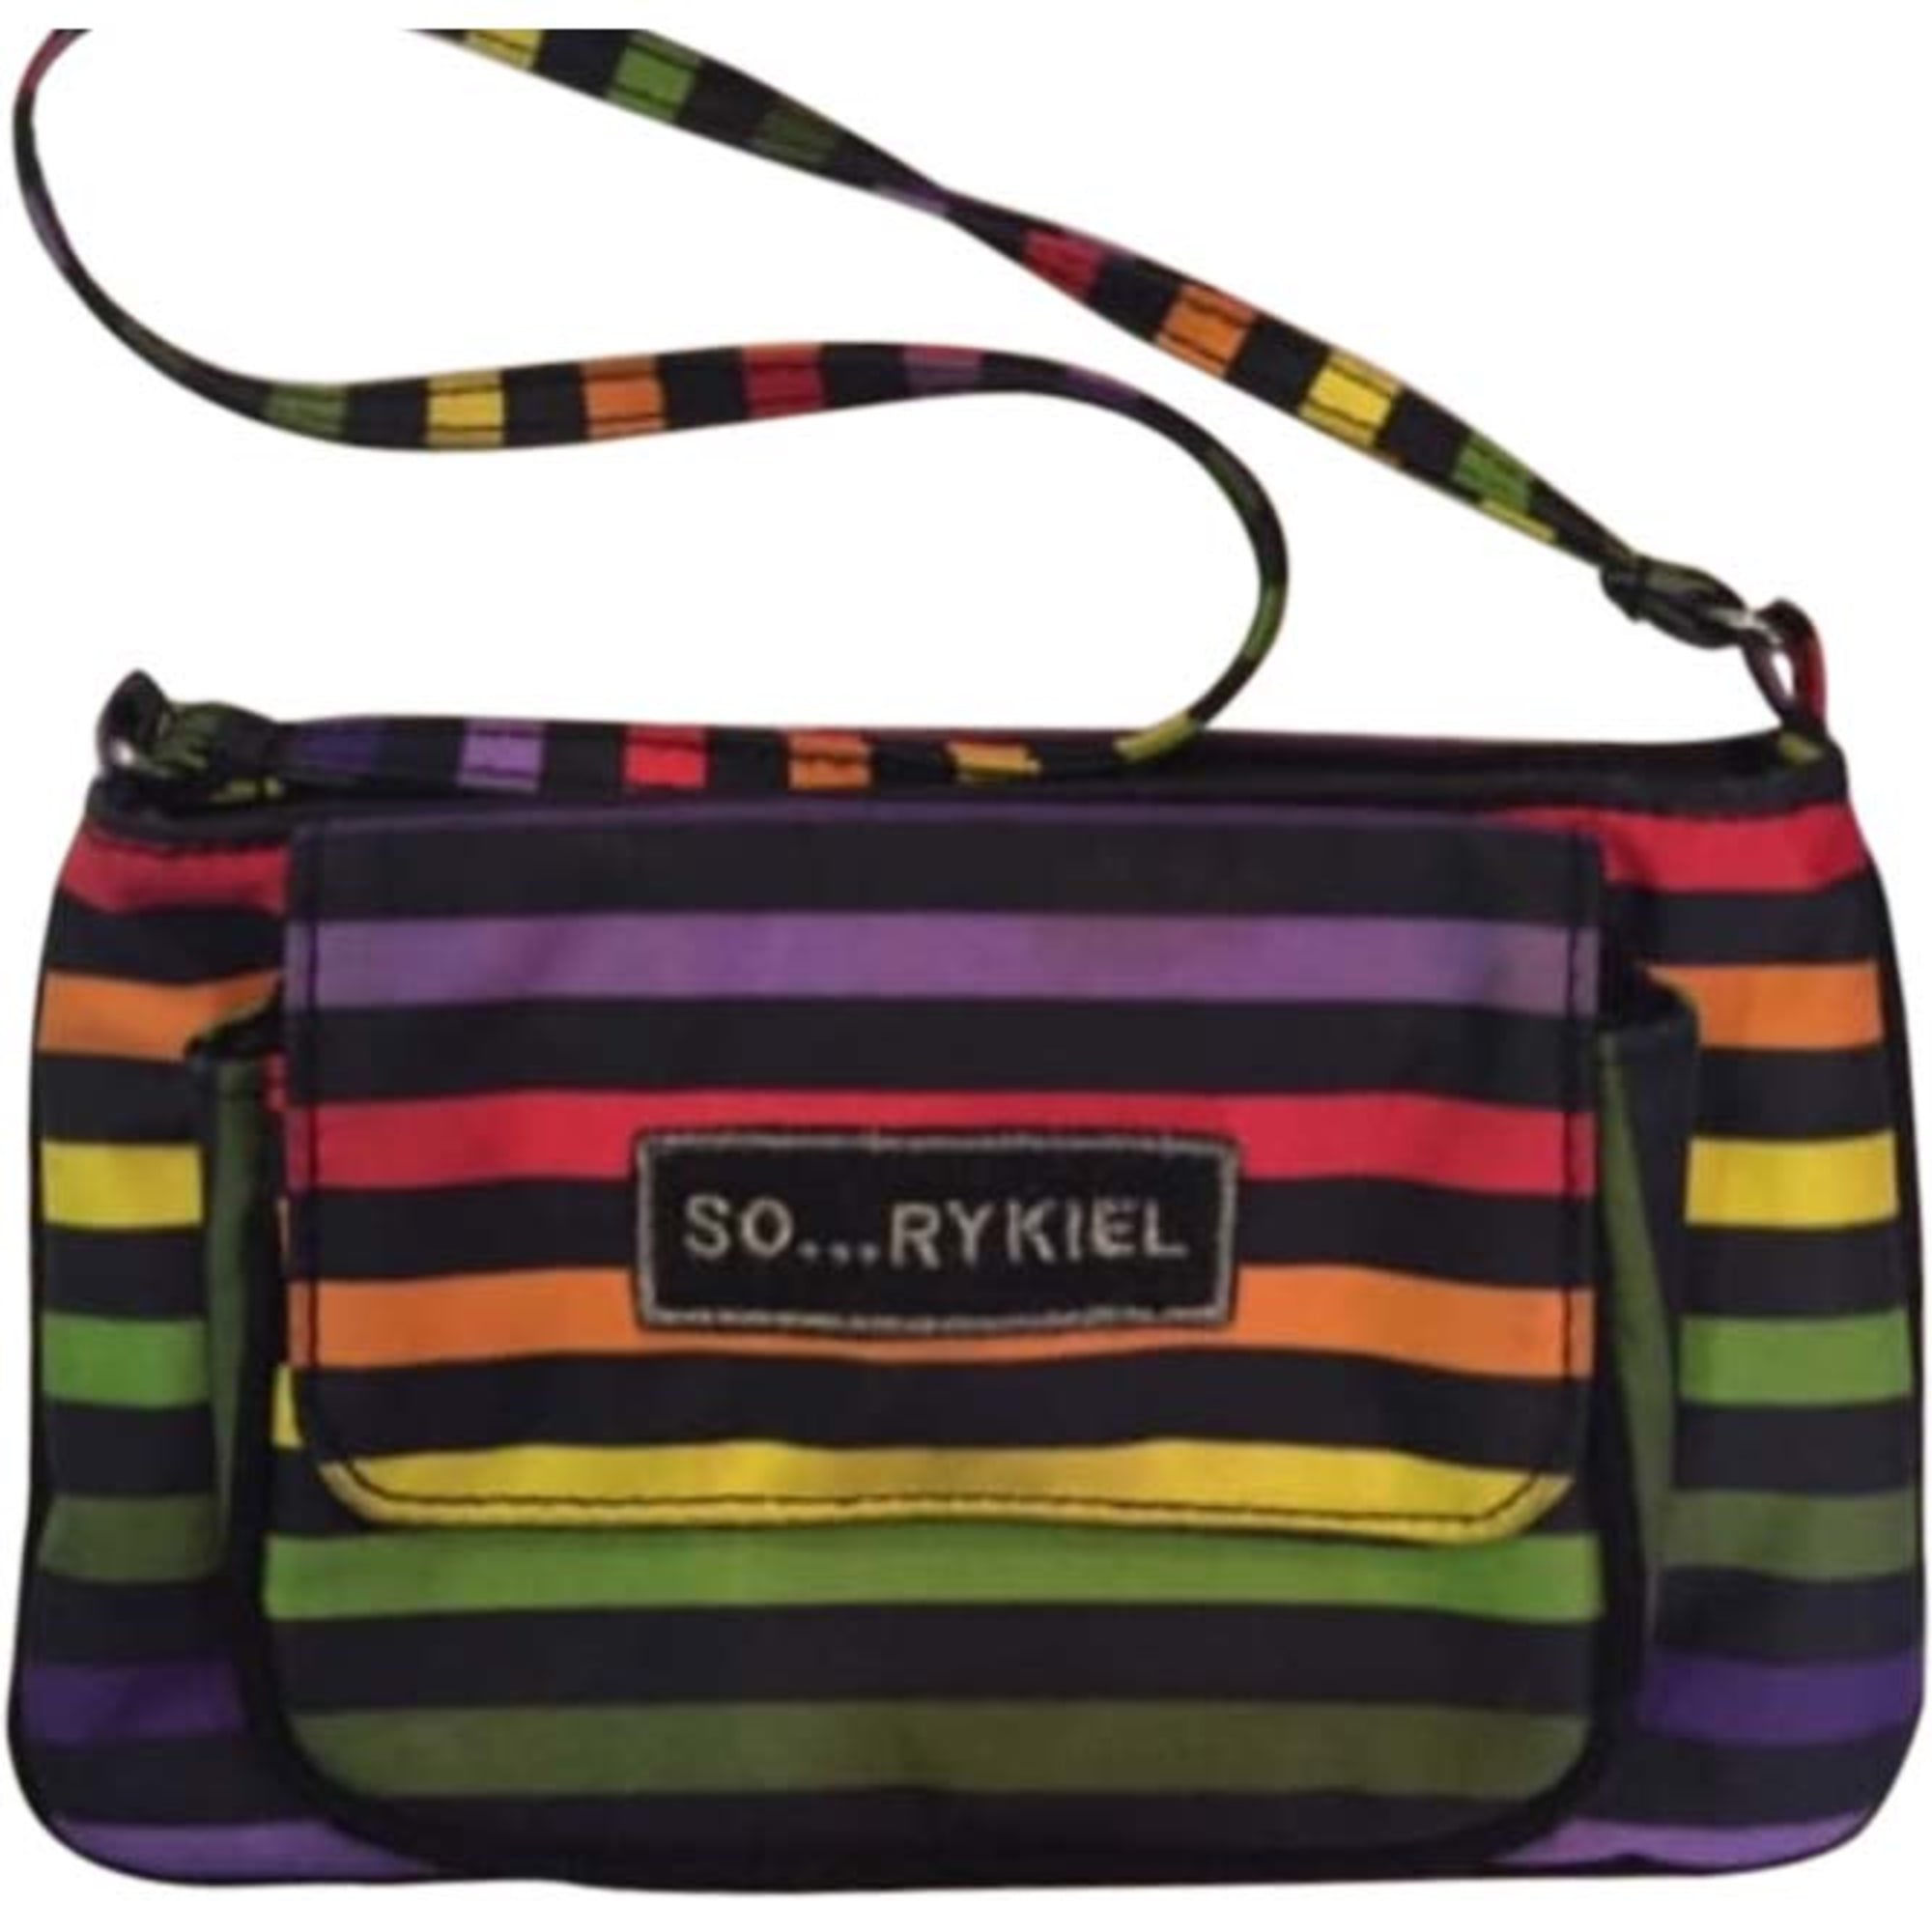 Non-Leather Clutch SONIA RYKIEL Multicolor